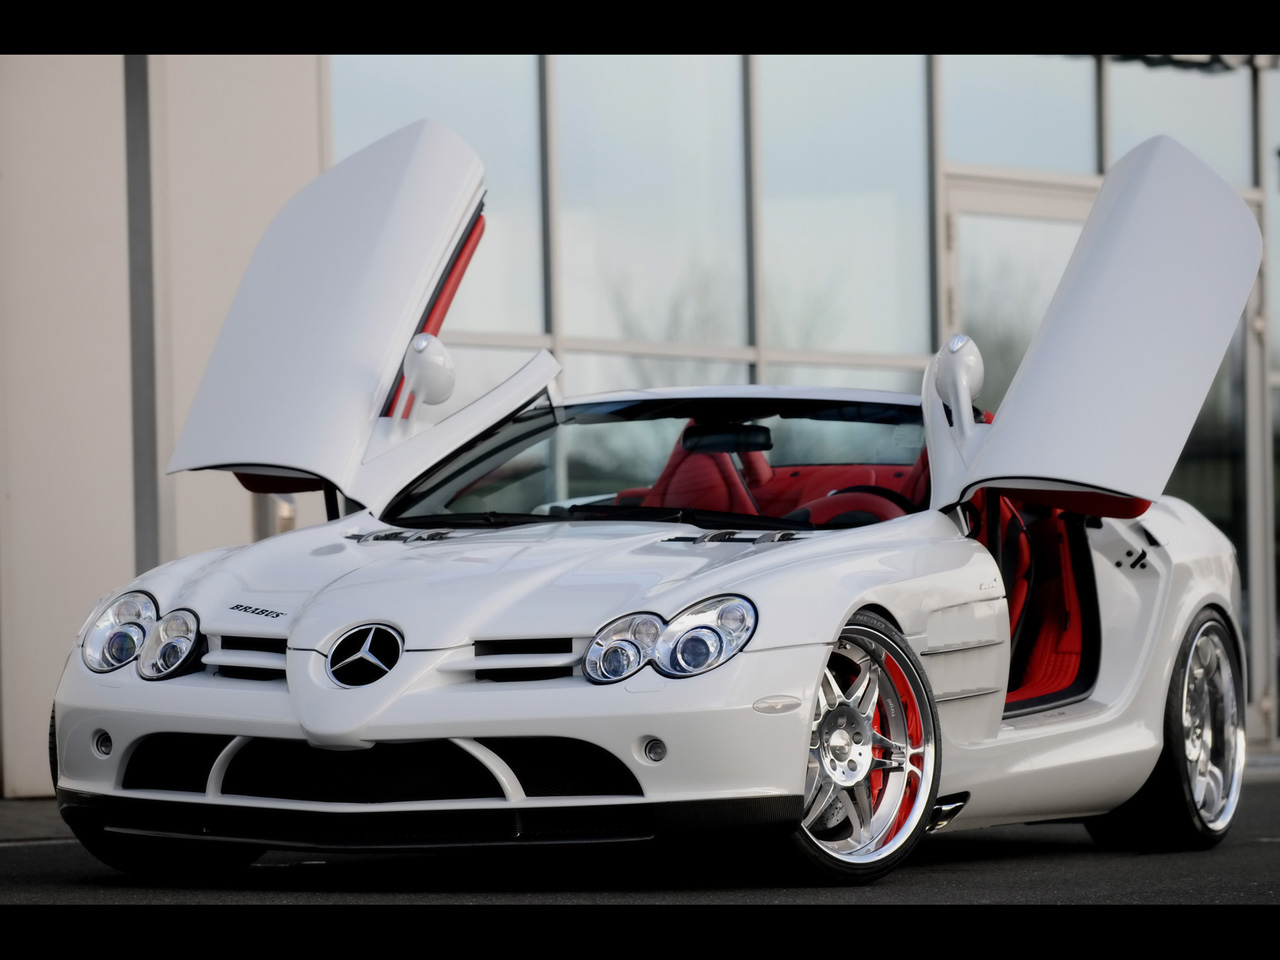 Mercedes-benz brabus photo - 1